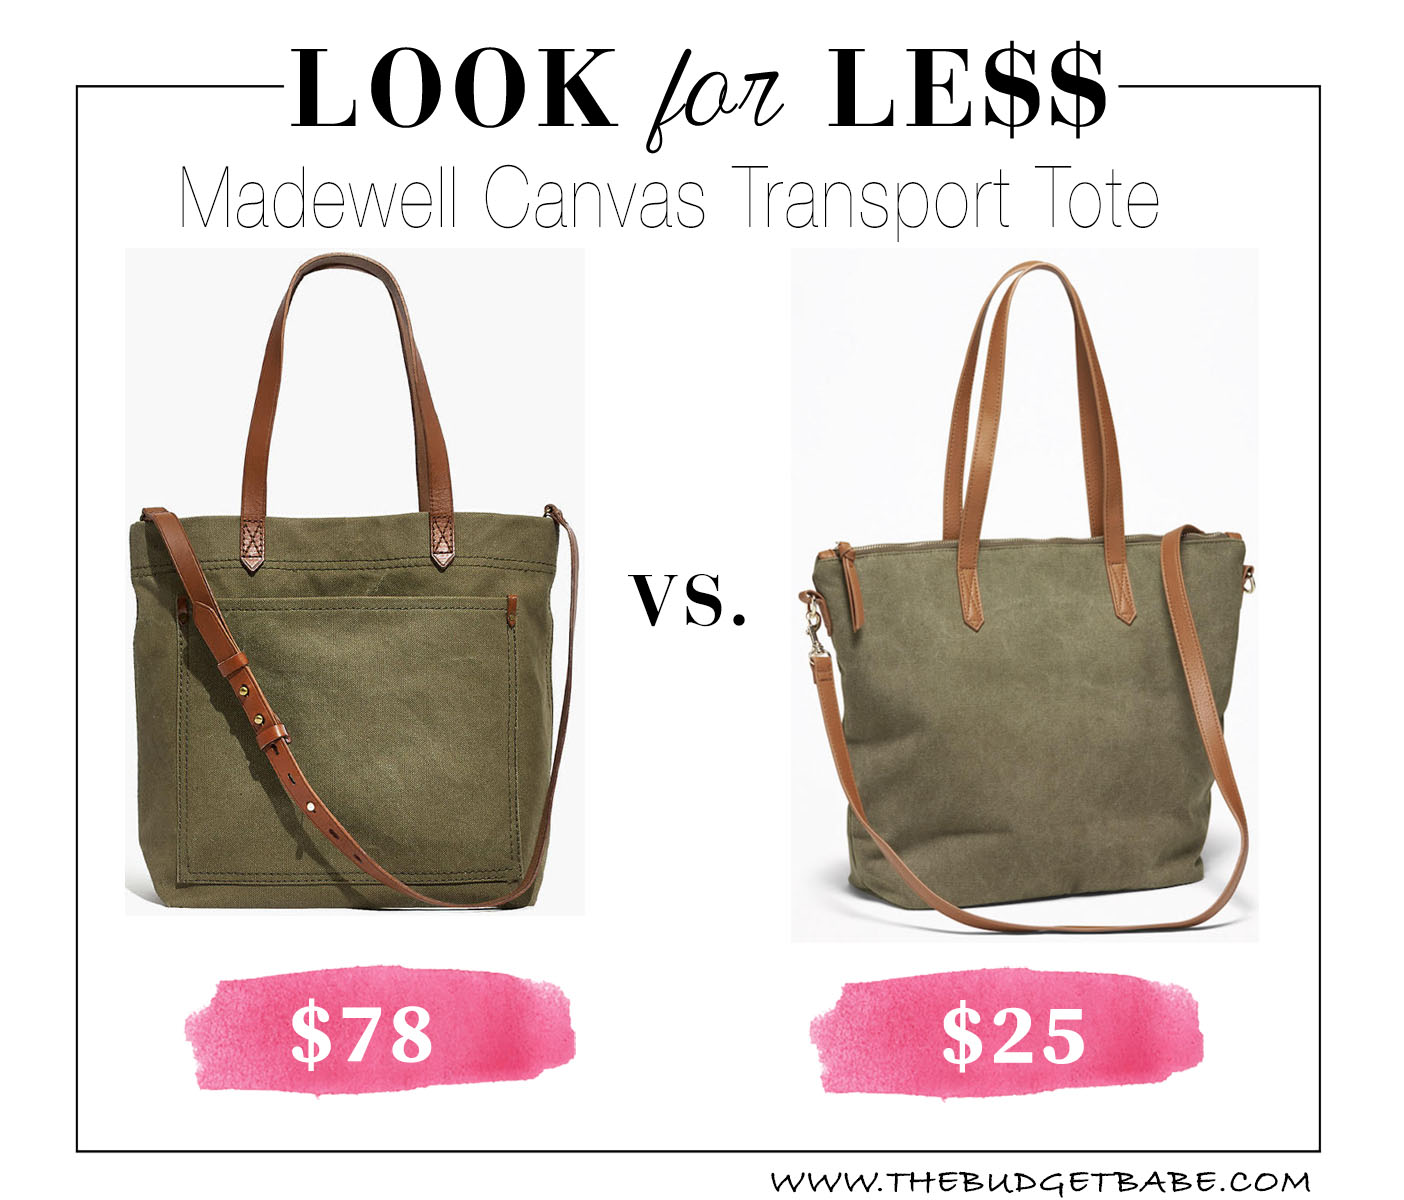 Get a dupe of Meghan Markles Madewell canvas tote for less!